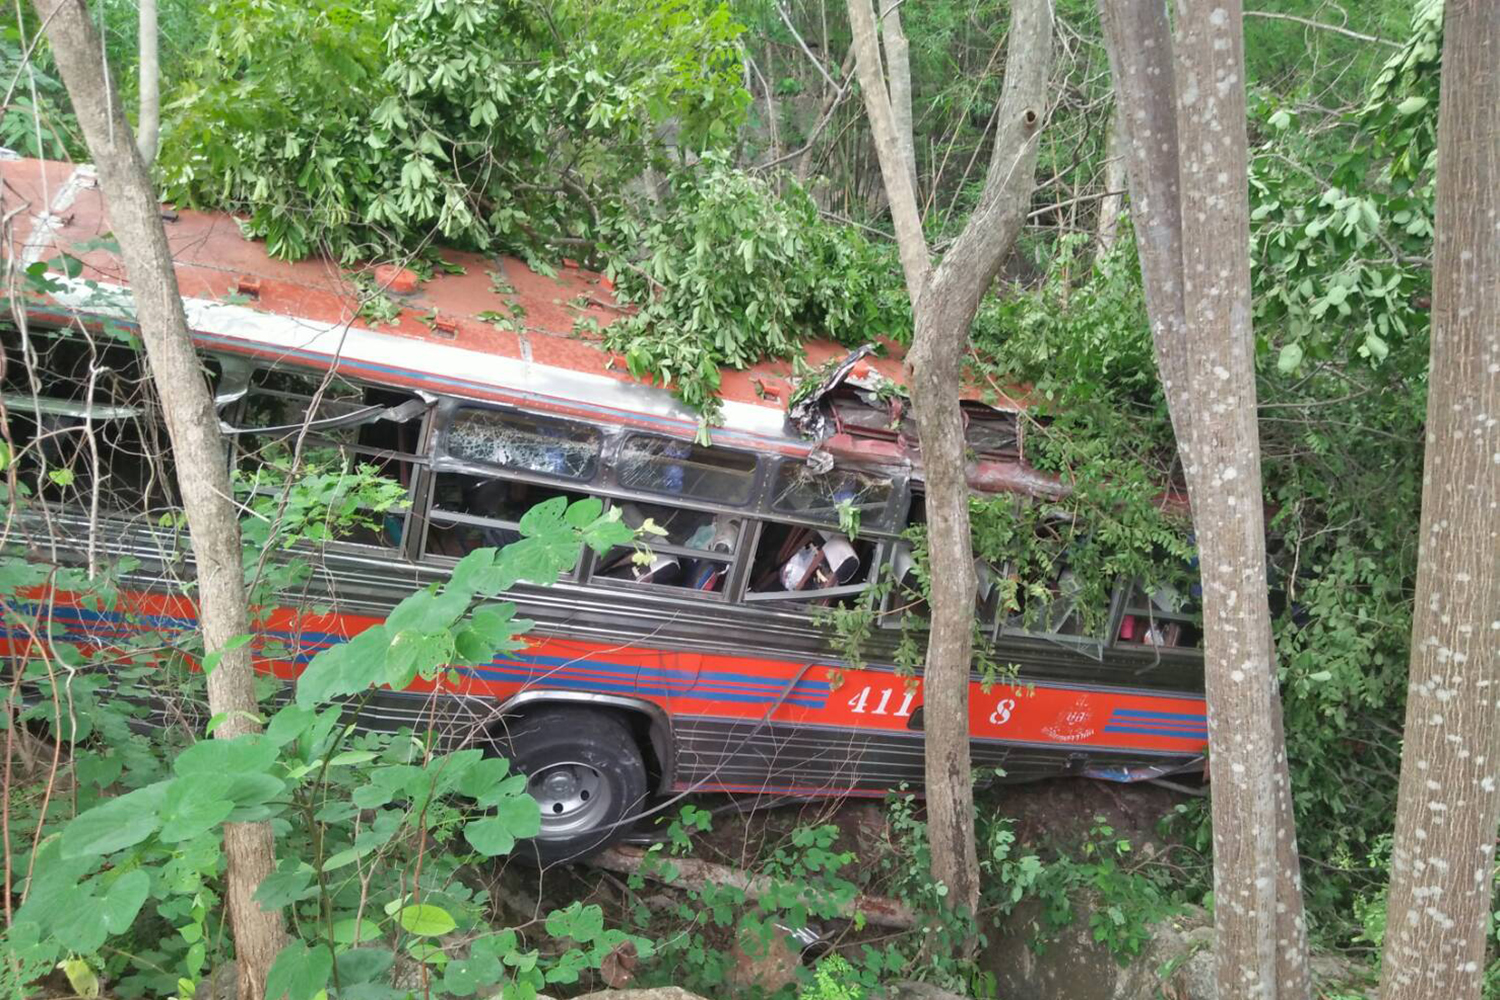 The crashed bus rests in a ditch after running off the road in Sai Yok district of Kanchanaburi, injuring about 30 people, on Thursday. (Photo by Piyarach Chongcharoen)